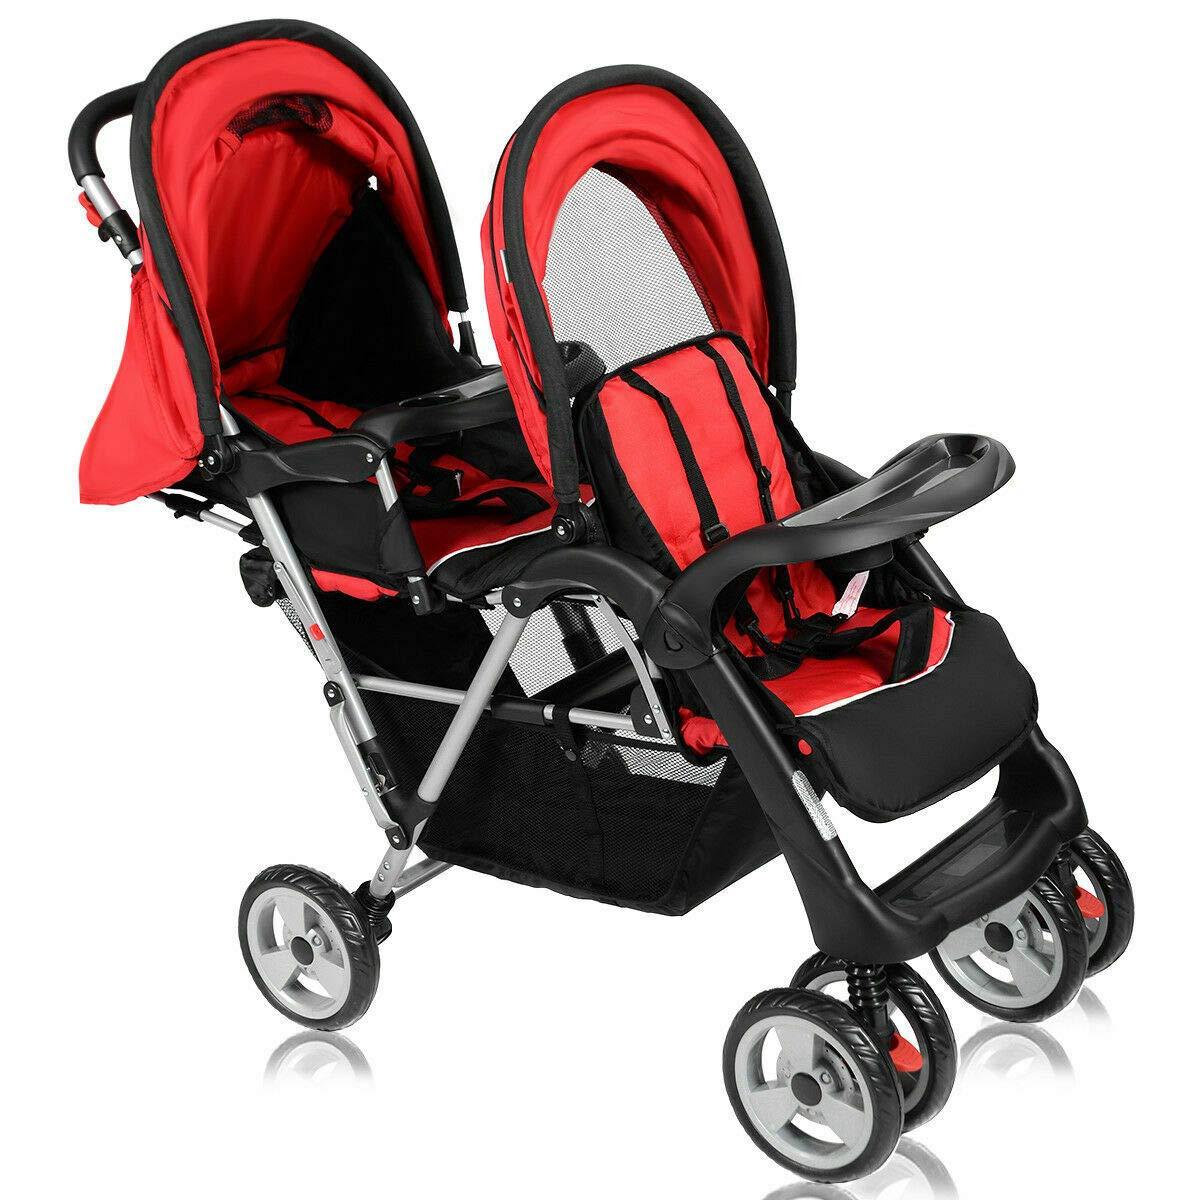 Cozinest Foldable Twin Baby Double Stroller Kids Jogger Travel Infant Pushchair Red by Cozinest (Image #6)